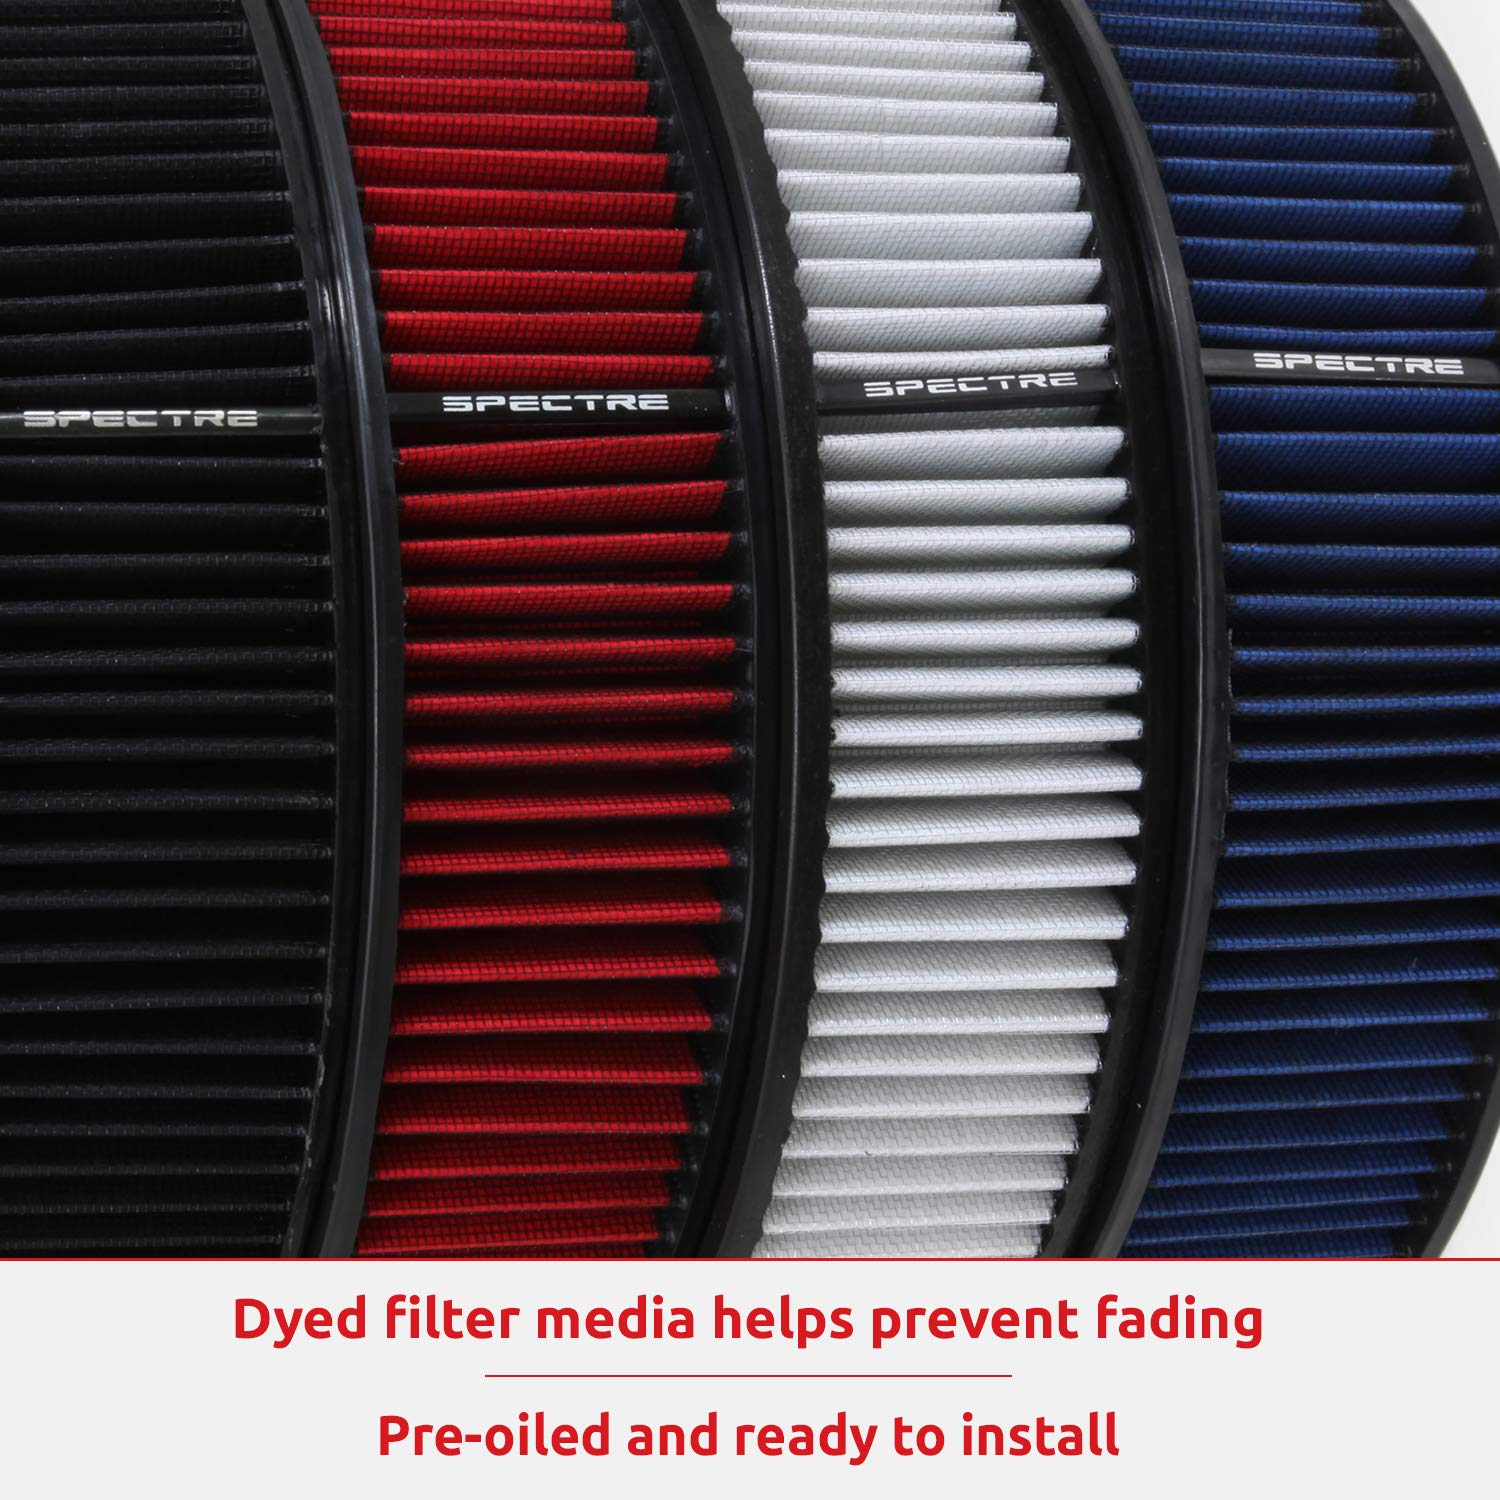 Spectre Performance 9738 Universal Clamp-On Air Filter: Round Tapered; 3 in/3.5 in/4 in (102 mm/89 mm/76 mm) Flange ID; 8.75 in (222 mm) Height; 6 in (152 mm) Base; 4.75 in (121 mm) Top by Spectre Performance (Image #7)